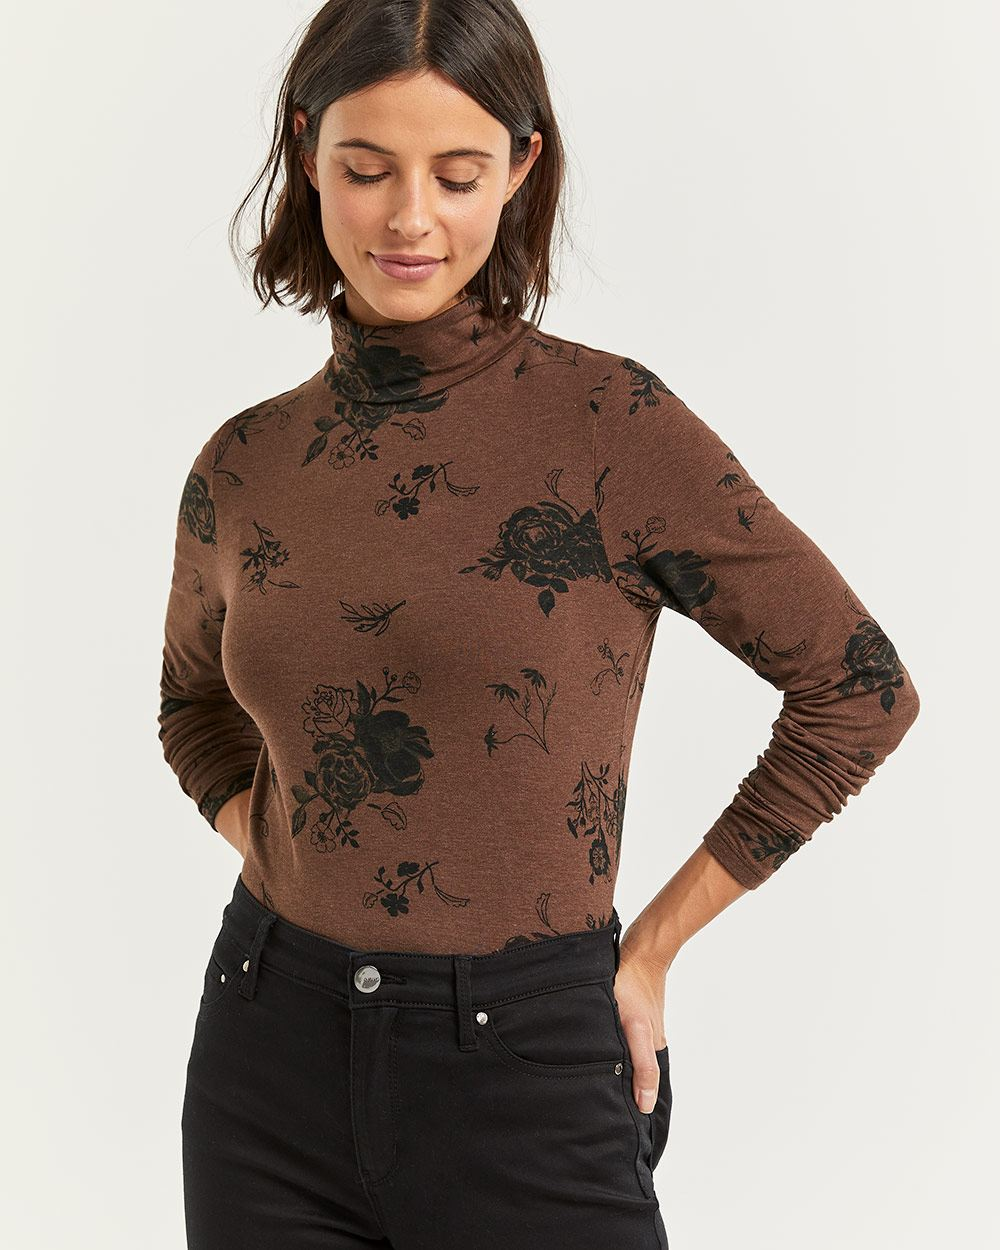 Printed Long Sleeve Turtleneck Tee